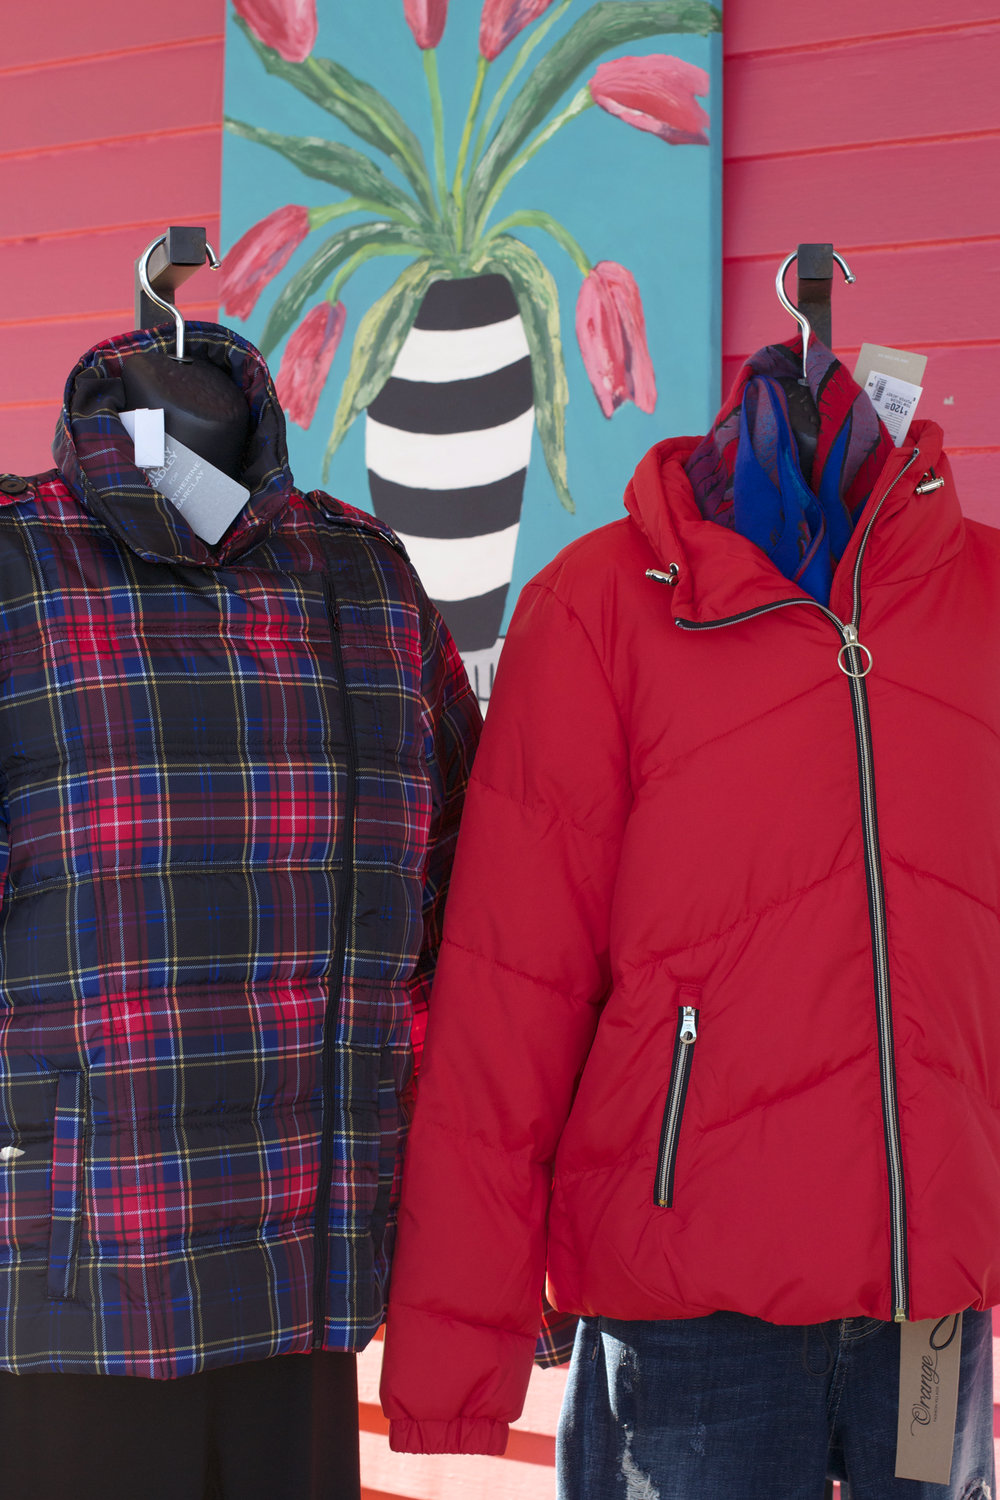 ski-jackets-by-front-door.jpg